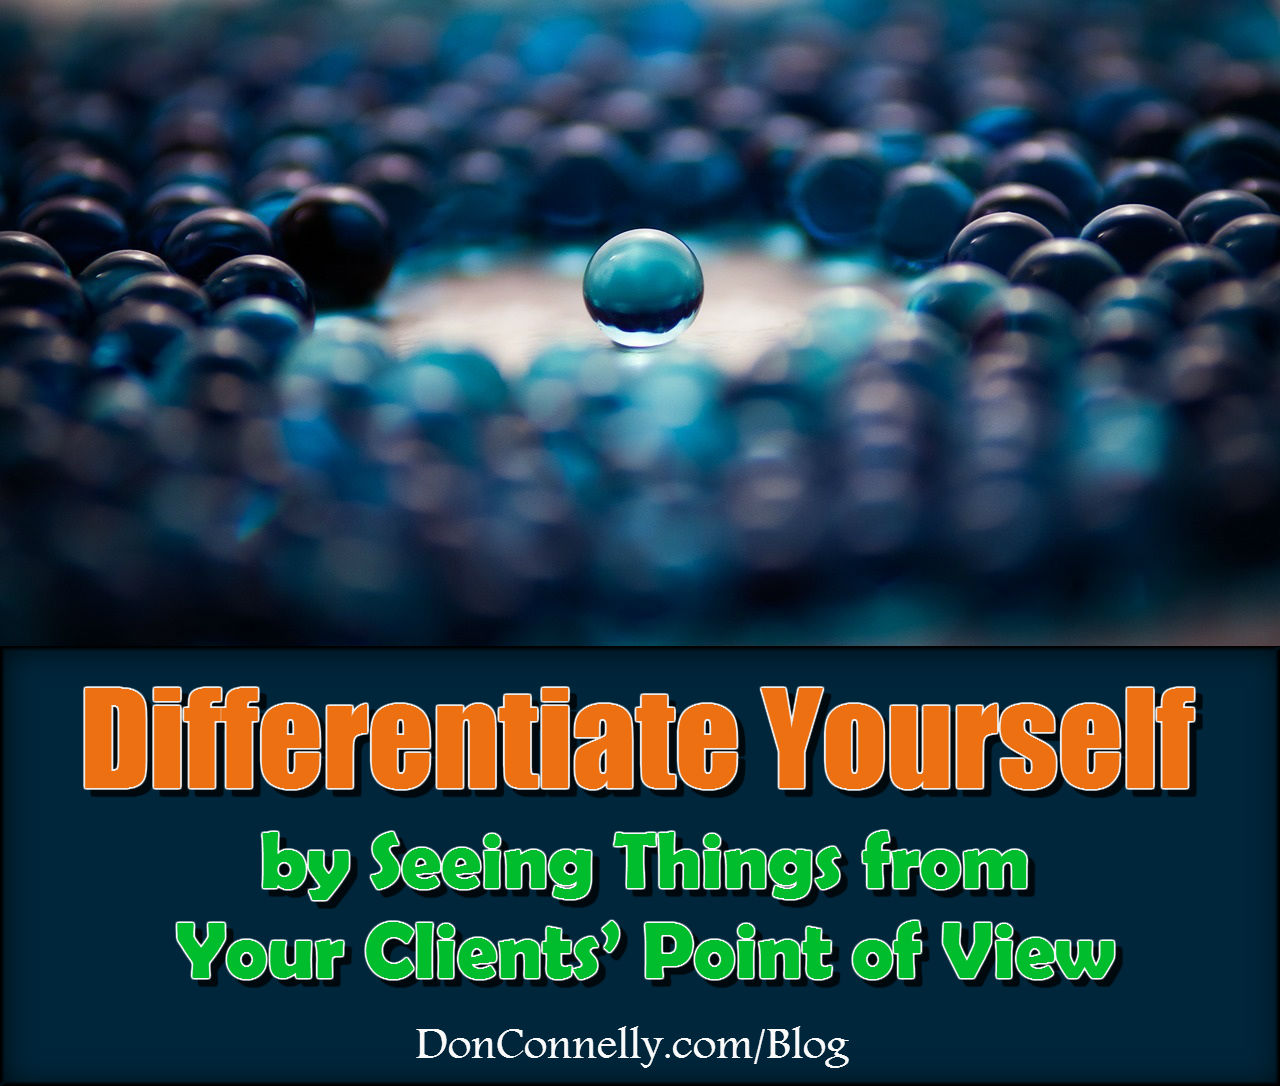 Differentiate Yourself by Seeing Things from Your Clients' Point of View